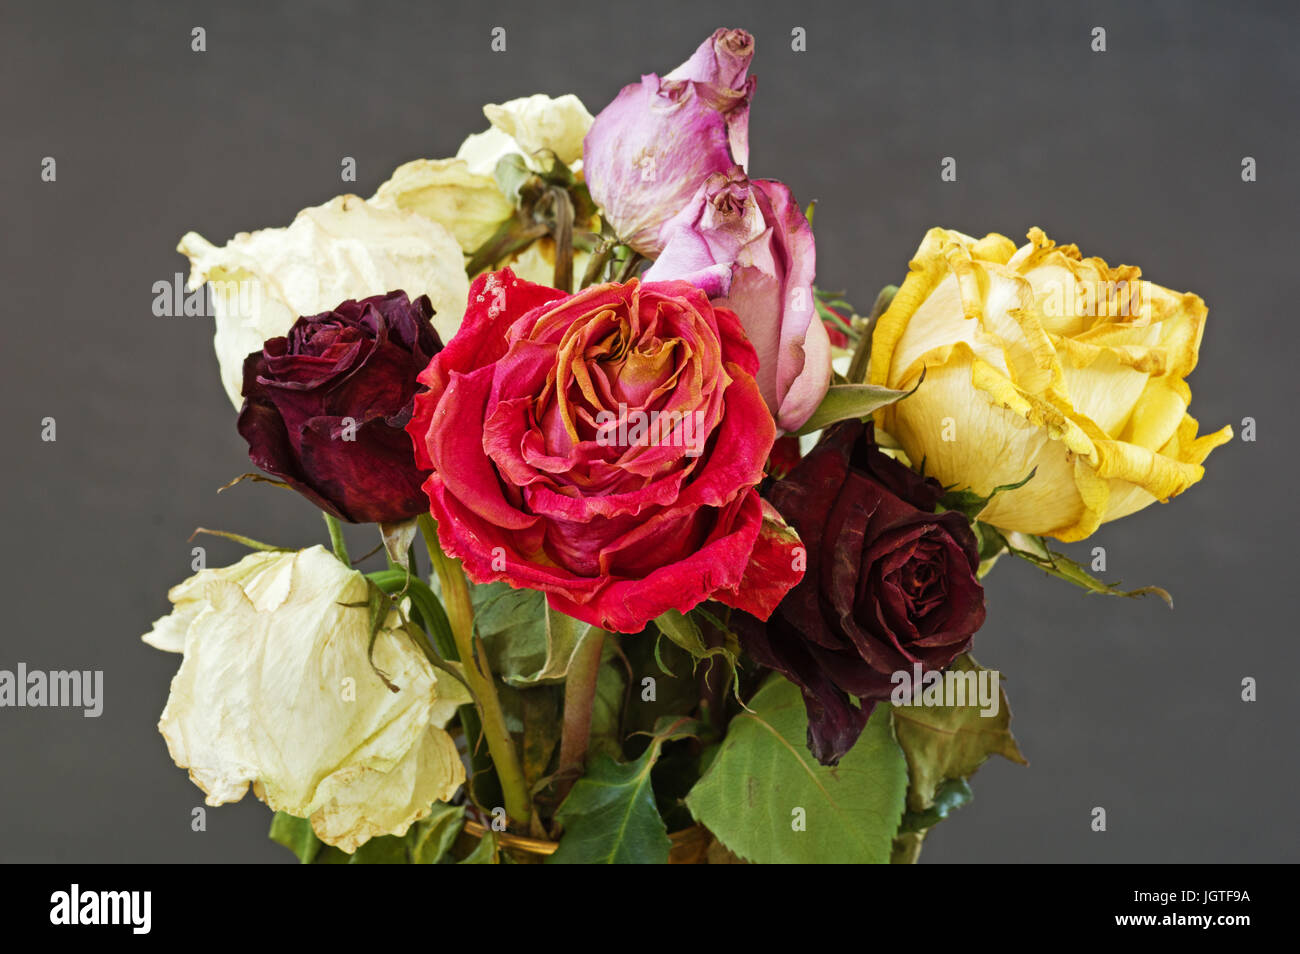 Wilted bouquet stock photos wilted bouquet stock images alamy a bouquet of old dried wilted roses with a gray background stock image izmirmasajfo